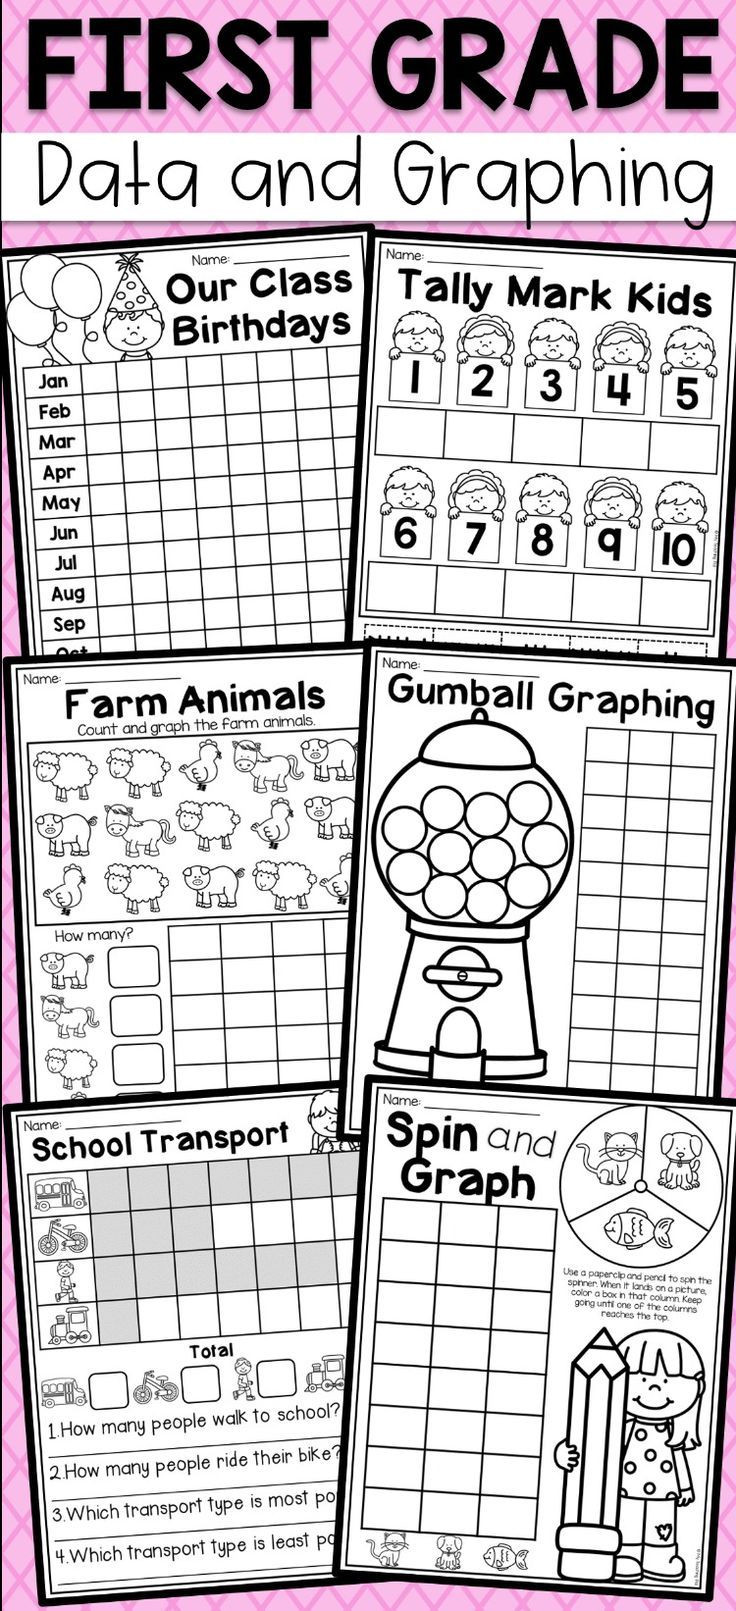 Graphing Worksheets for First Grade First Grade Data and Graphing Worksheets Distance Learning